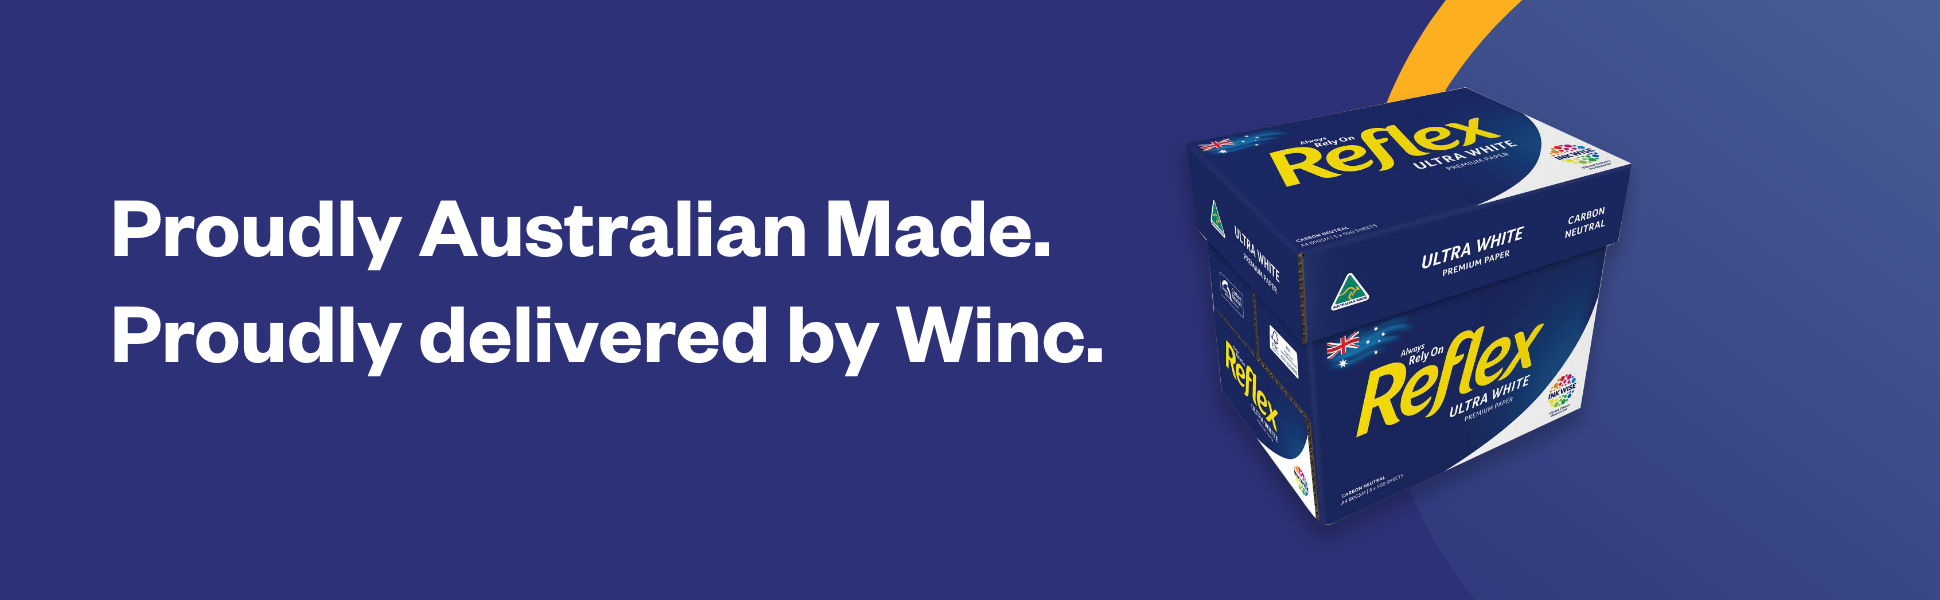 Proudly Australian Made. Proudly delivered by Winc